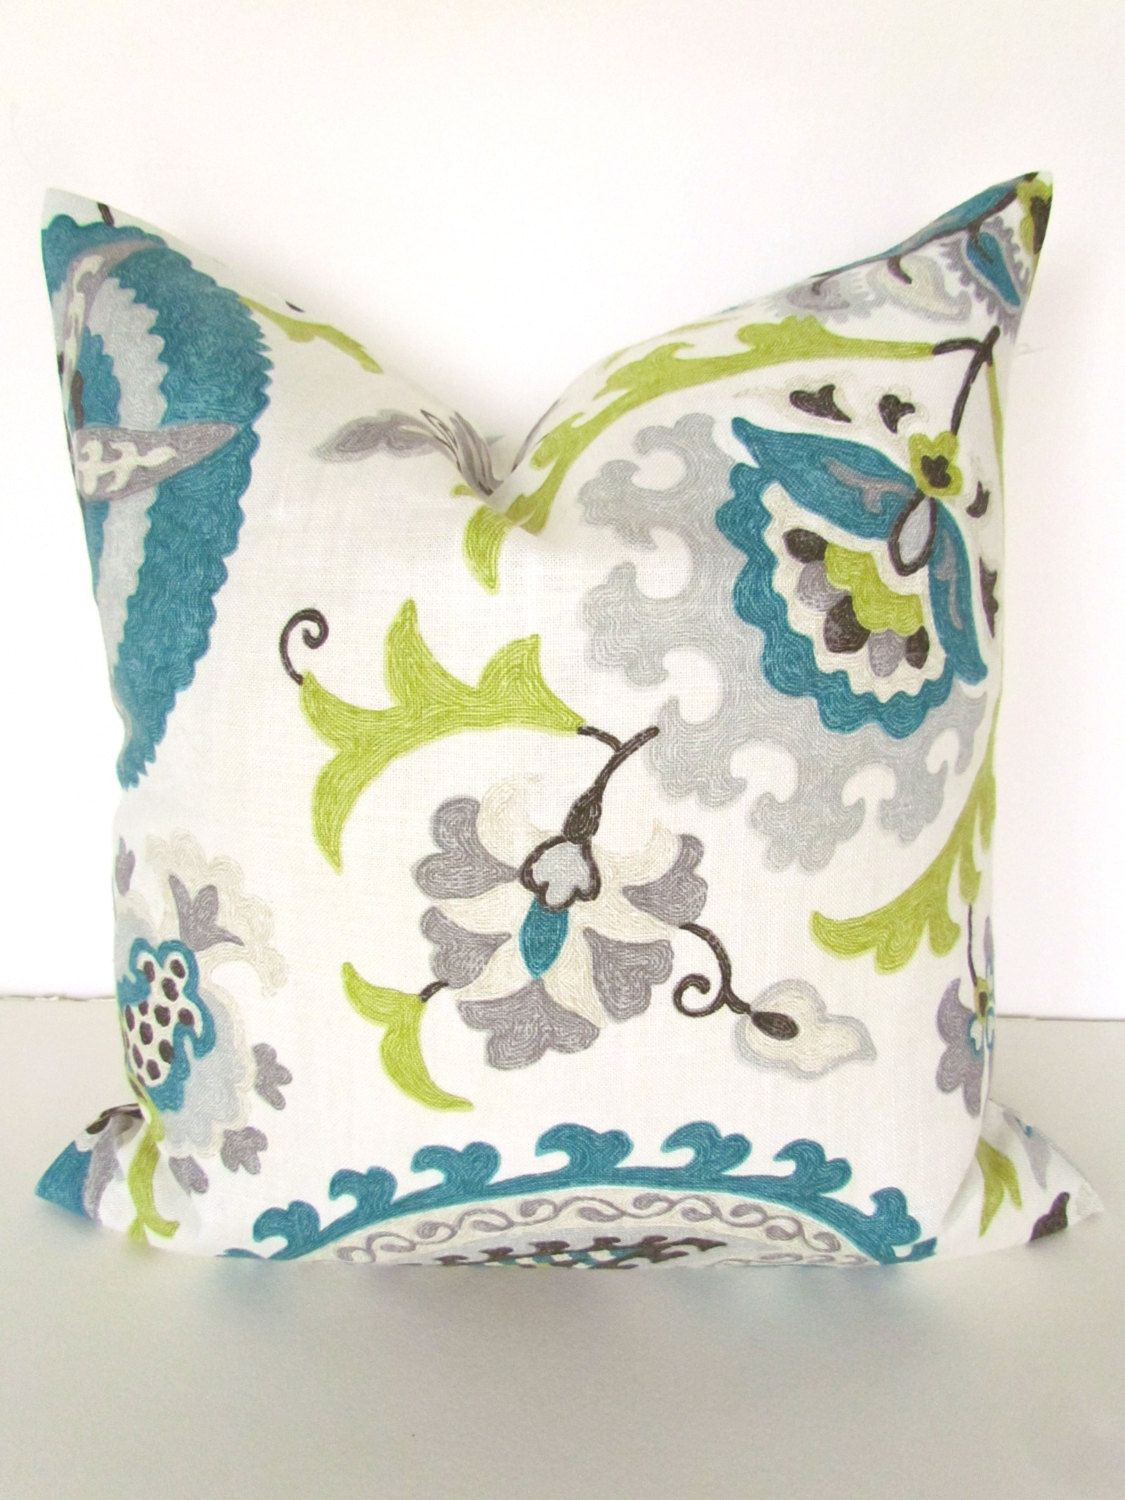 teal pillows blue throw pillows gray pillows lime green throw pillow covers turquoise grey floral 16 18 20x20 all sizes linen home decor blue pillows